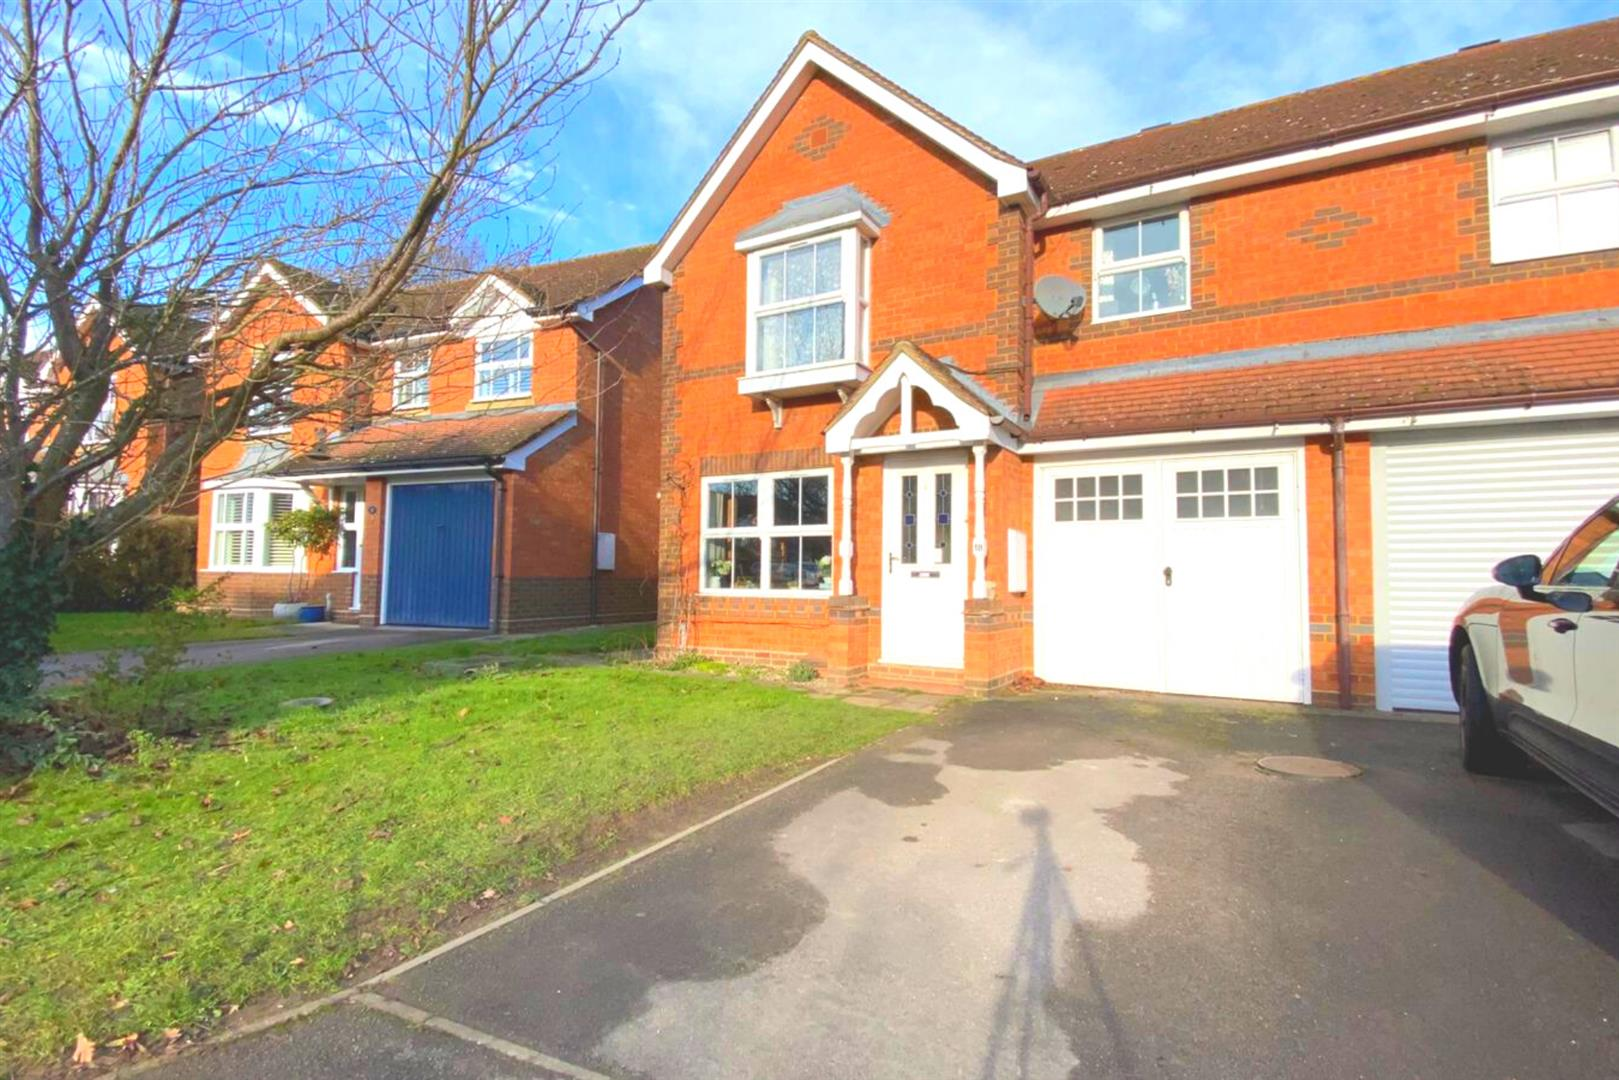 3 bed semi-detached for sale in Woodley - Property Image 1